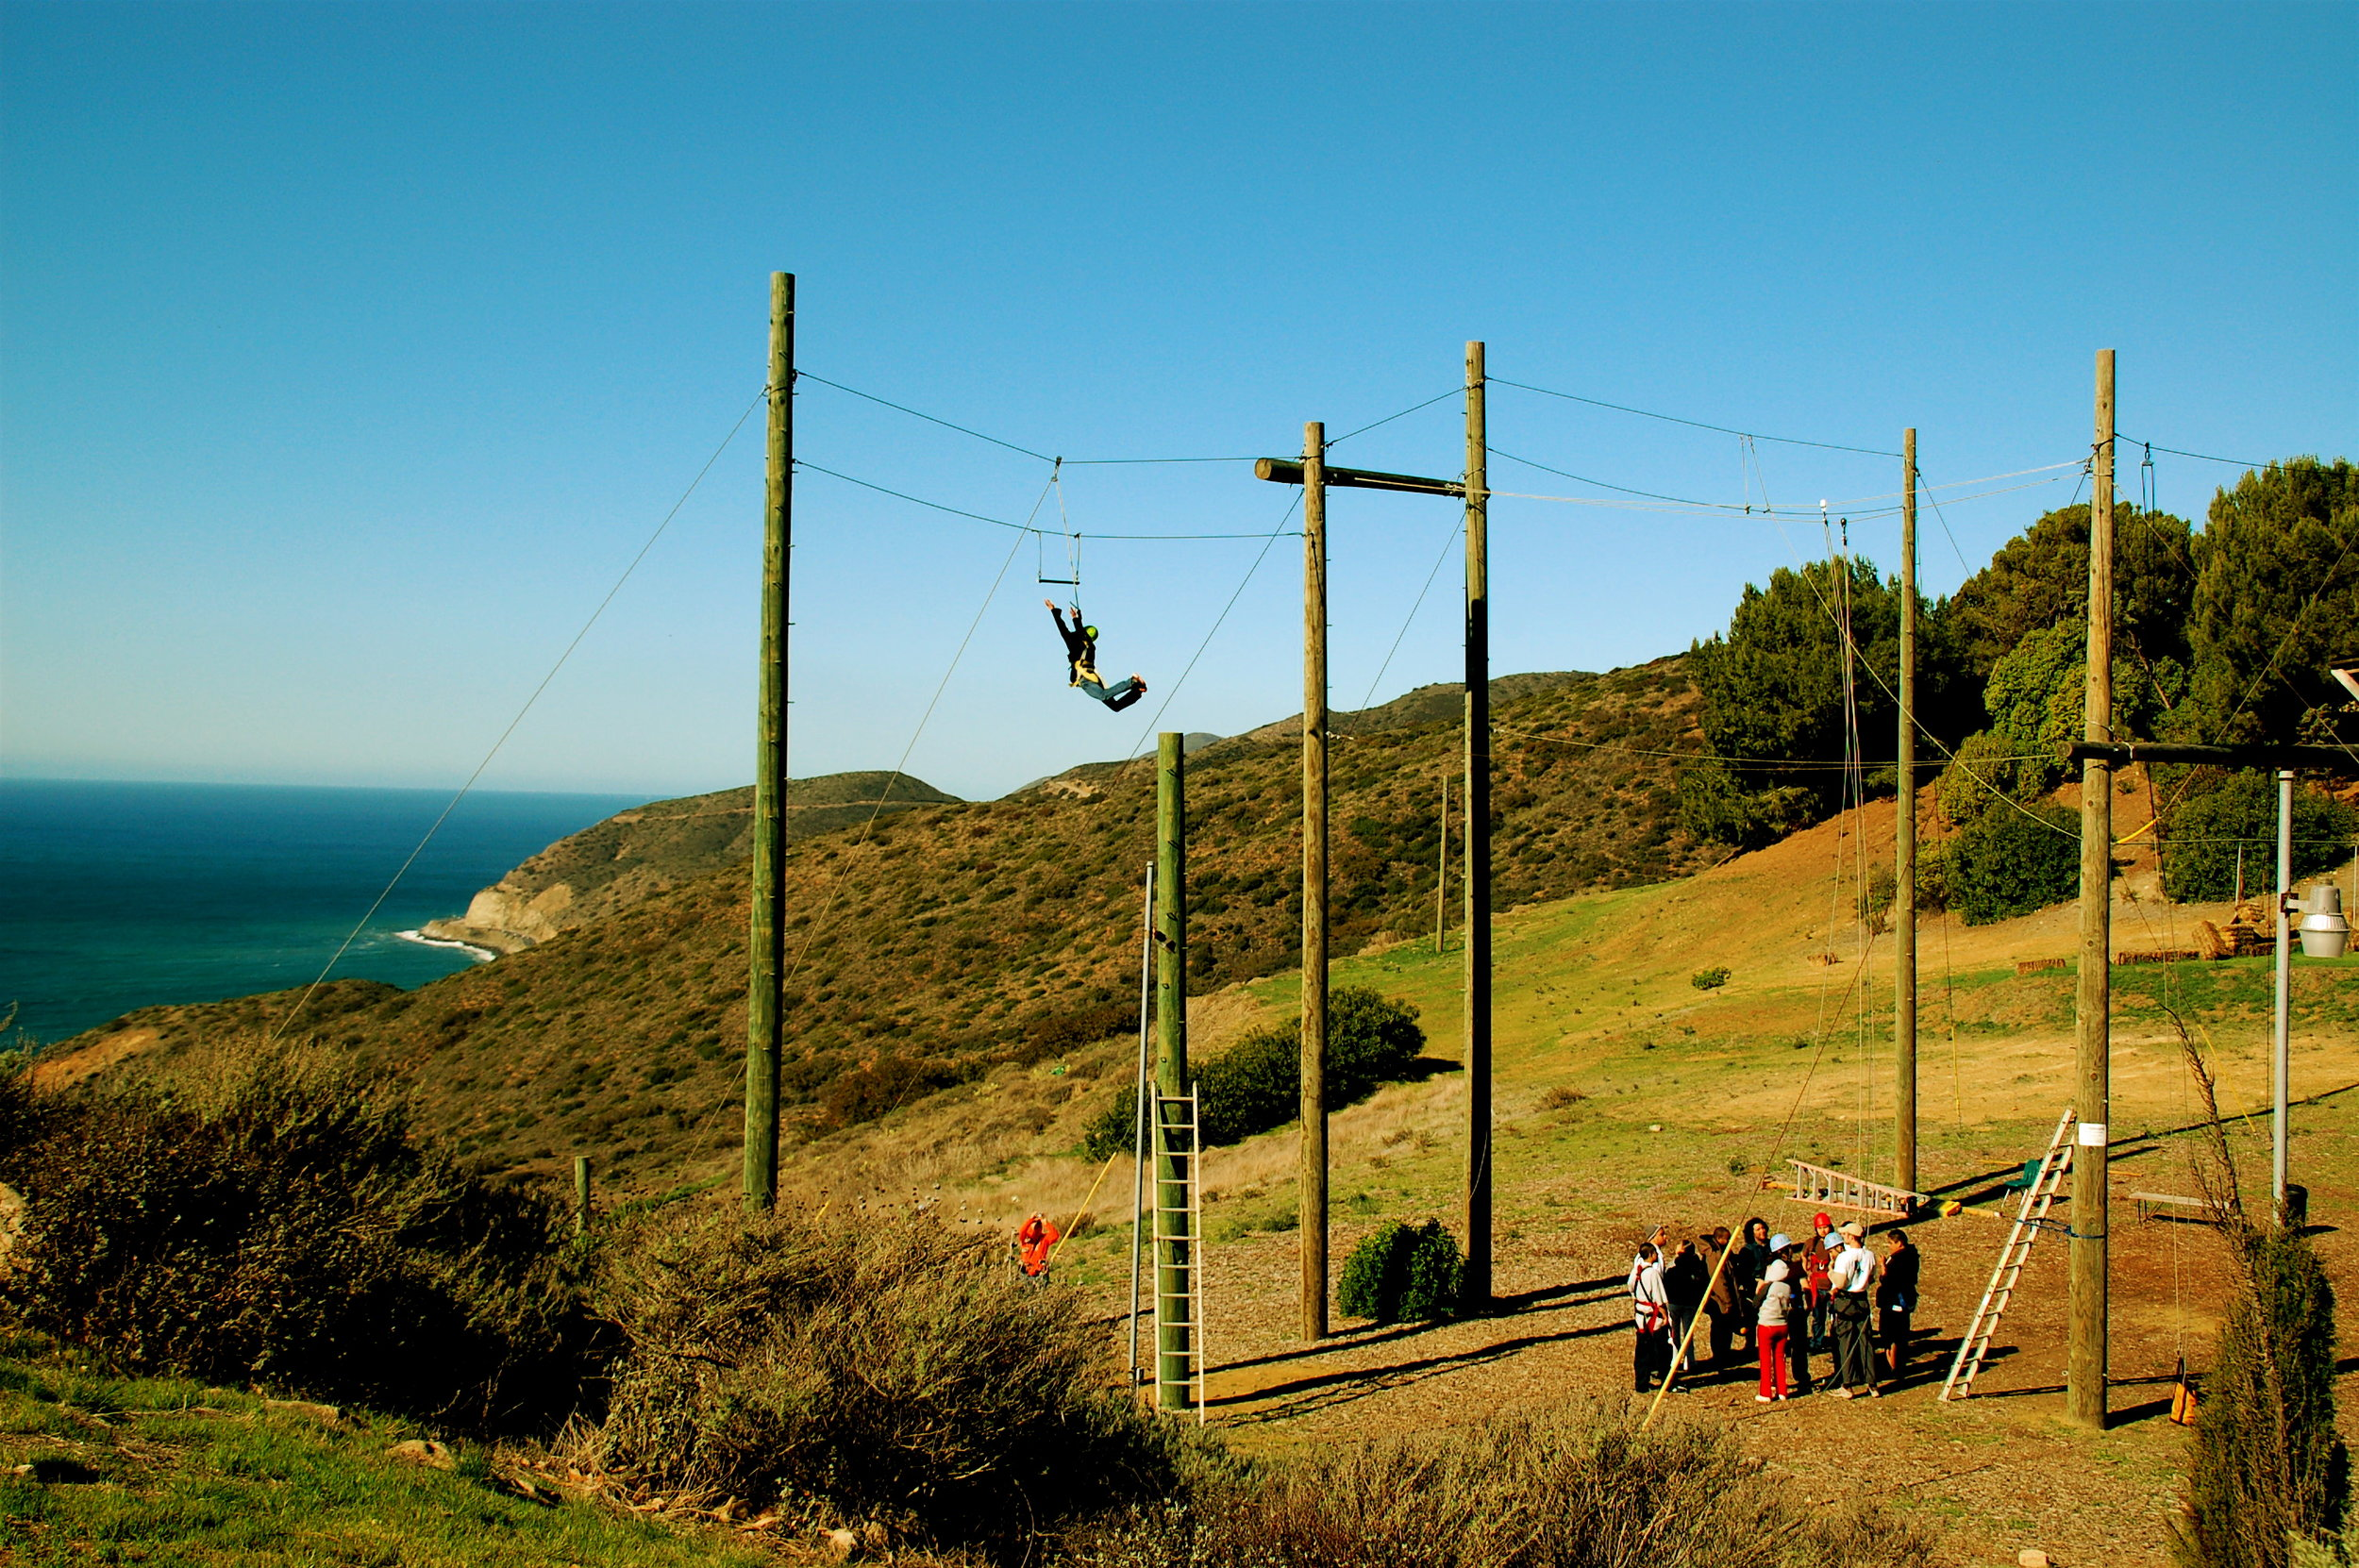 Gindling Hilltop High Ropes Course Malibu Overview.JPG